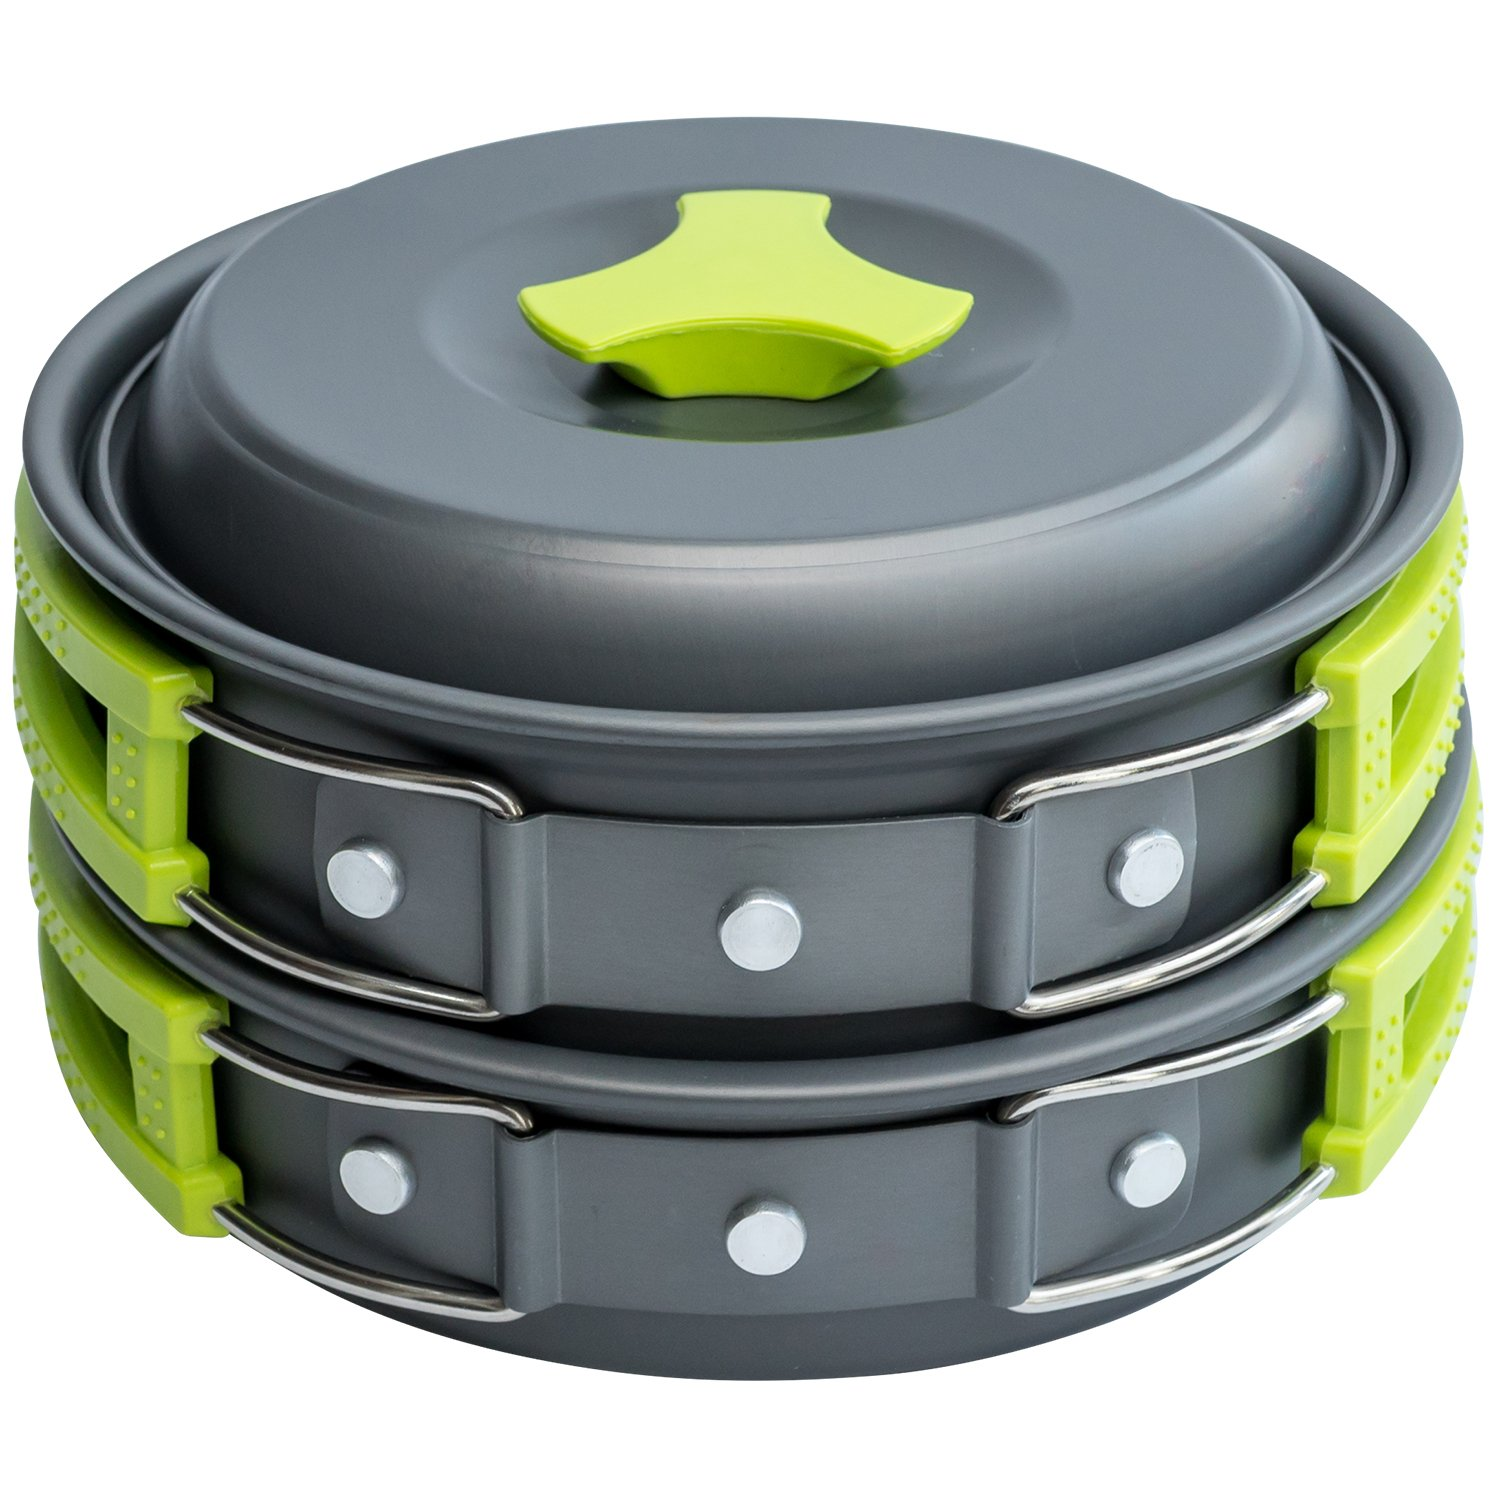 MALLOME CAMPING COOKING SET